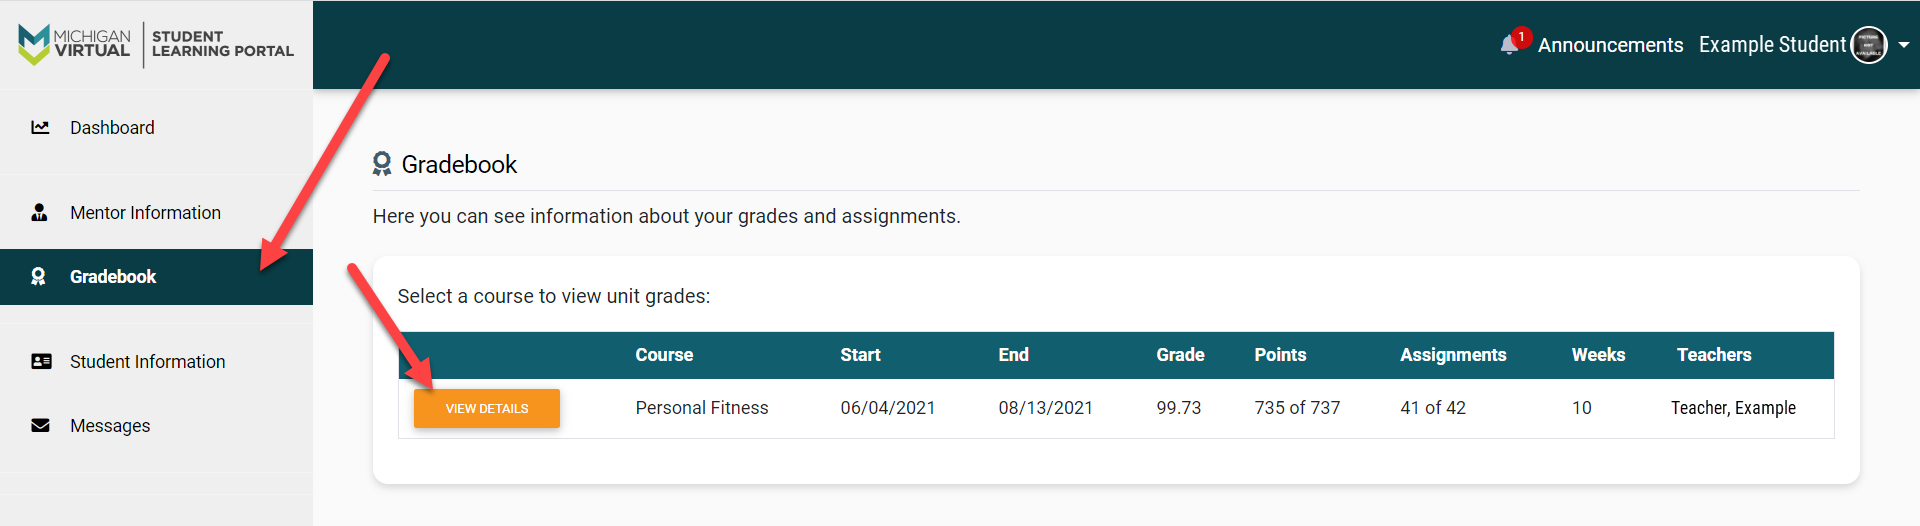 The Gradebook page is shown with a list of courses. An arrow points to the Gradebook menu option on the left and to the View Details button within the page courses module.